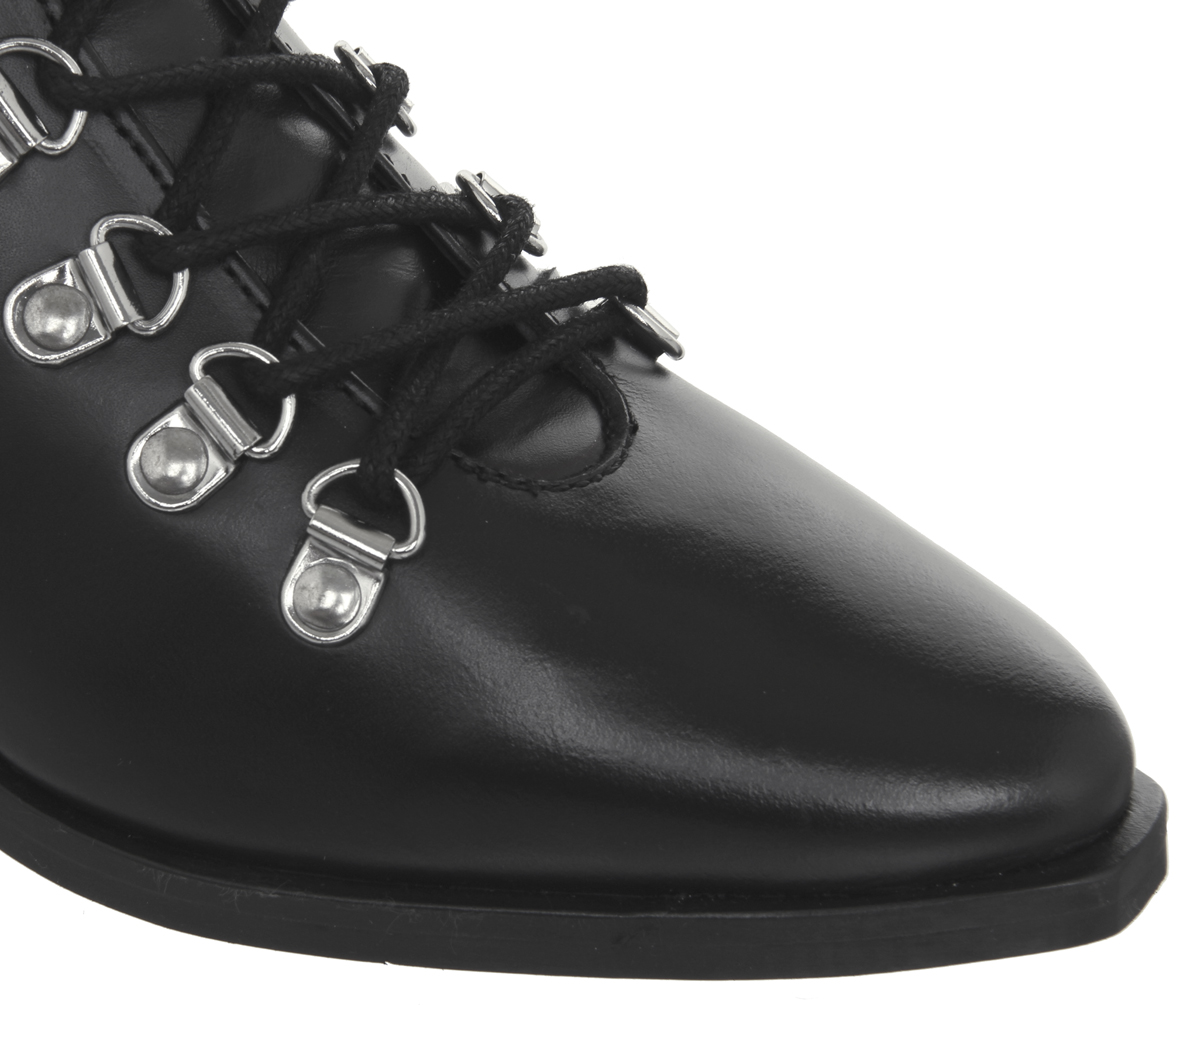 Womens-Office-Apocalypse-Lace-Detail-Point-Boots-Black-Leather-Boots thumbnail 9